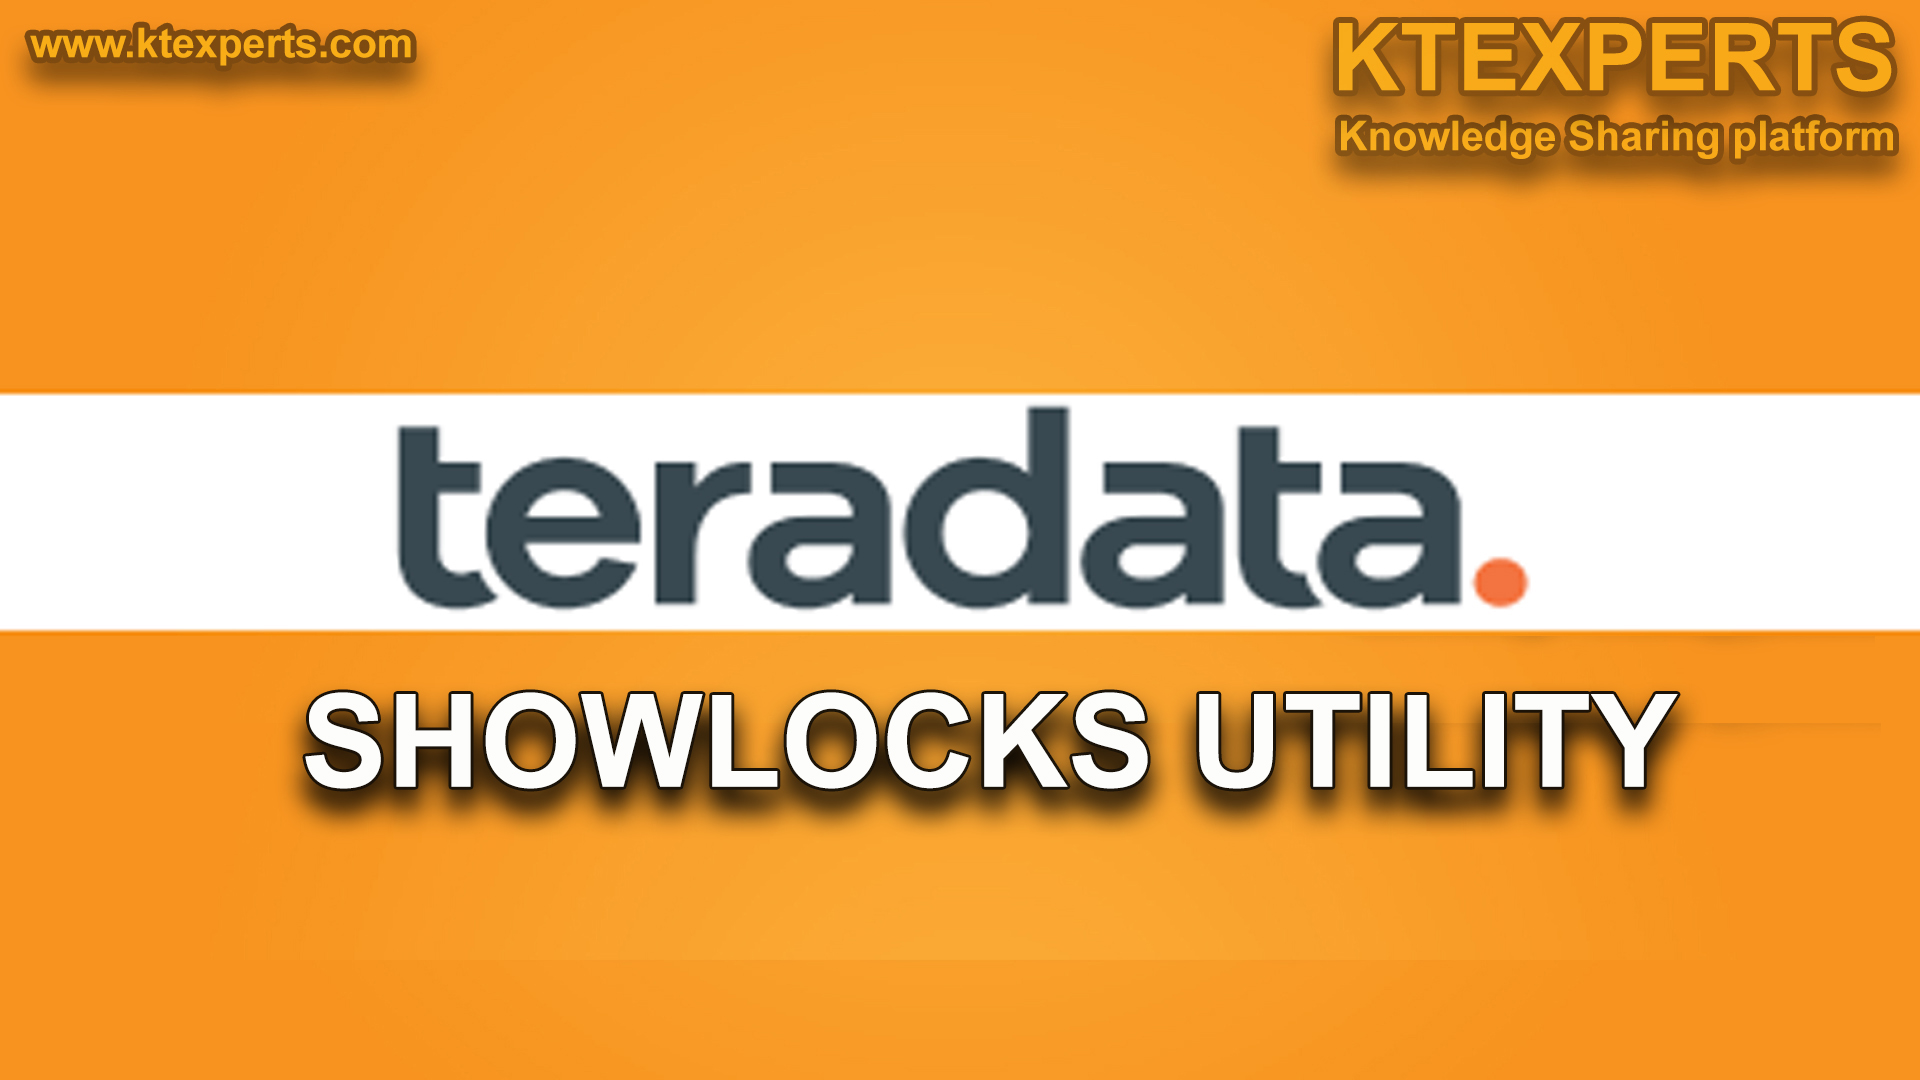 SHOWLOCKS UTILITY